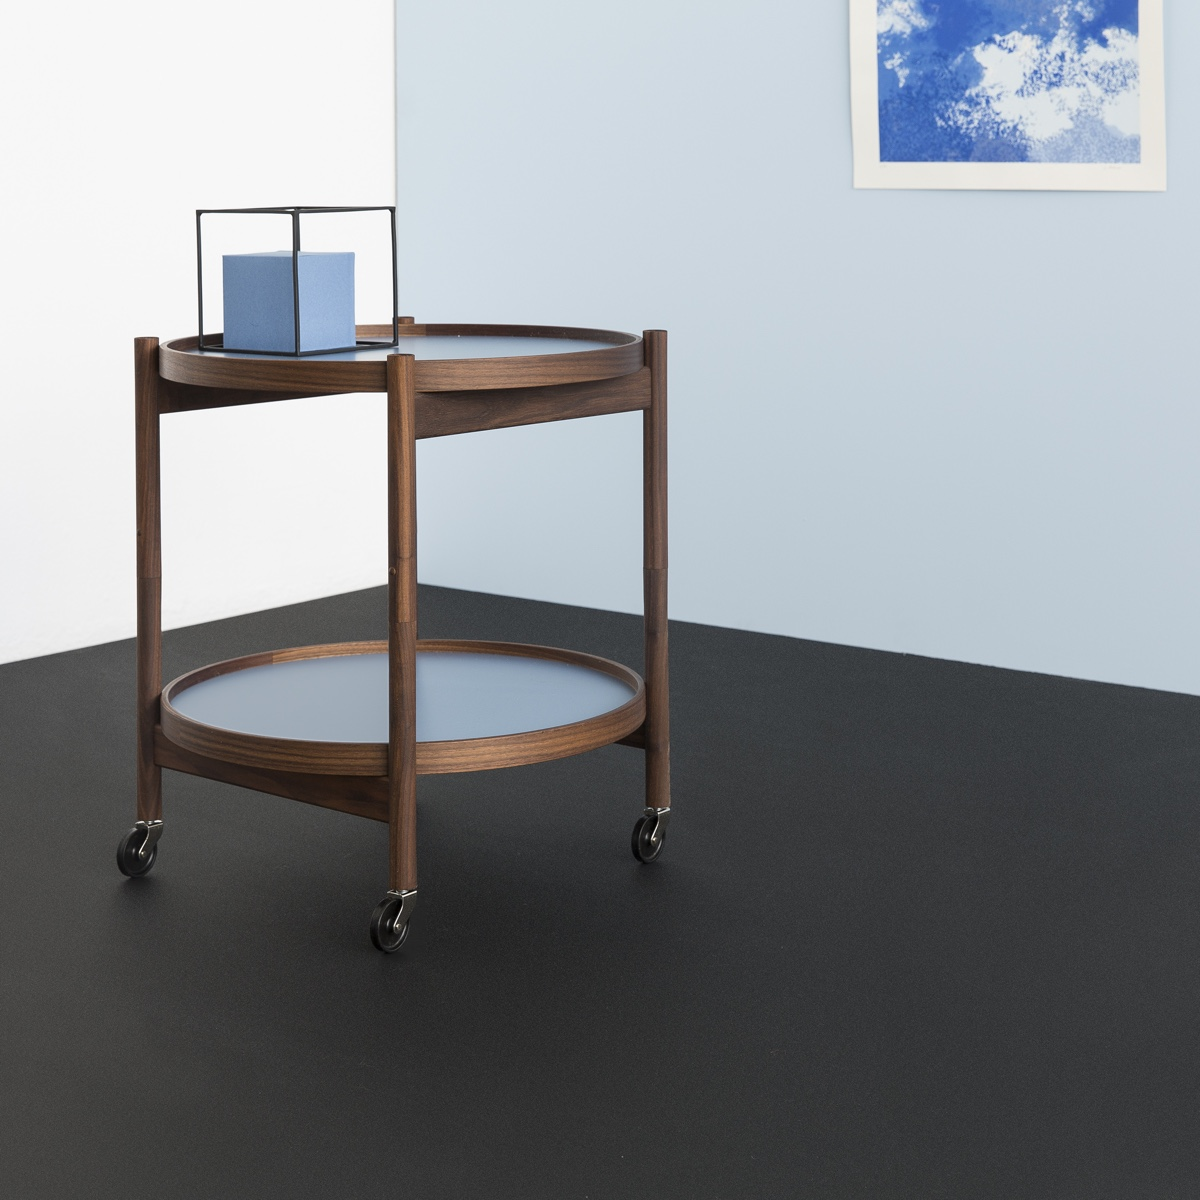 Hans Bølling's designed his classic Tray Table in 1963. A midcentury Danish design icon, the Tray Table is both aesthetically pleasing and functional. The Bølling Tray Table is pictured in a Storm Blue colour. Image courtesy of Brdr. Krüger.